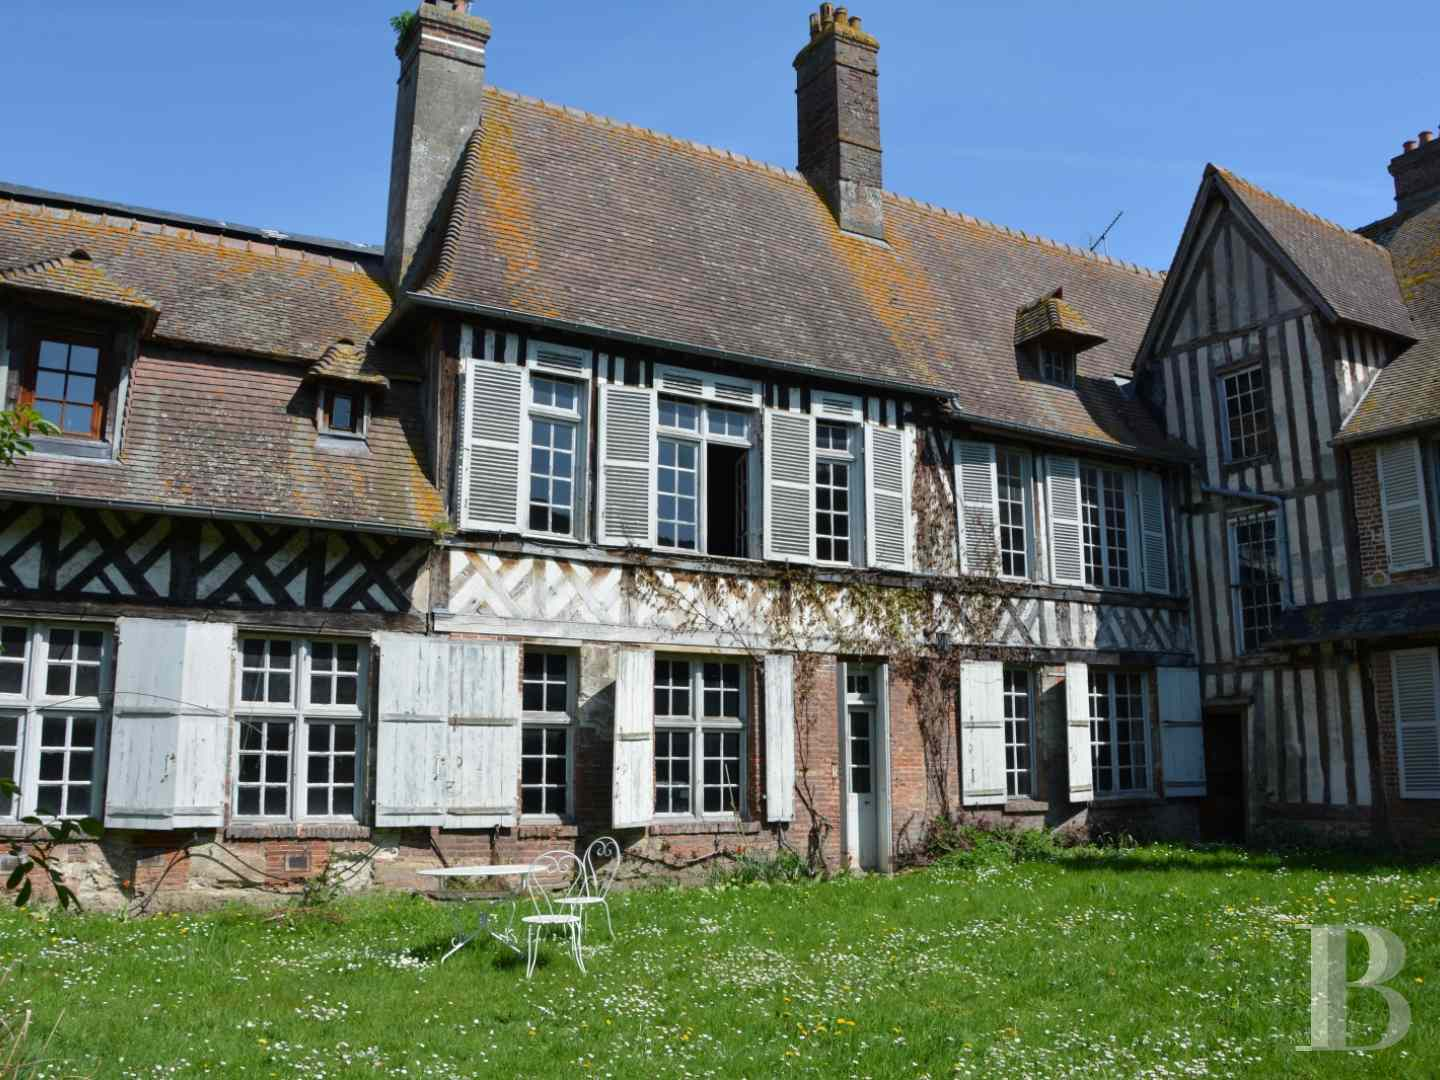 France mansions for sale lower normandy deauville 16 - 4 zoom